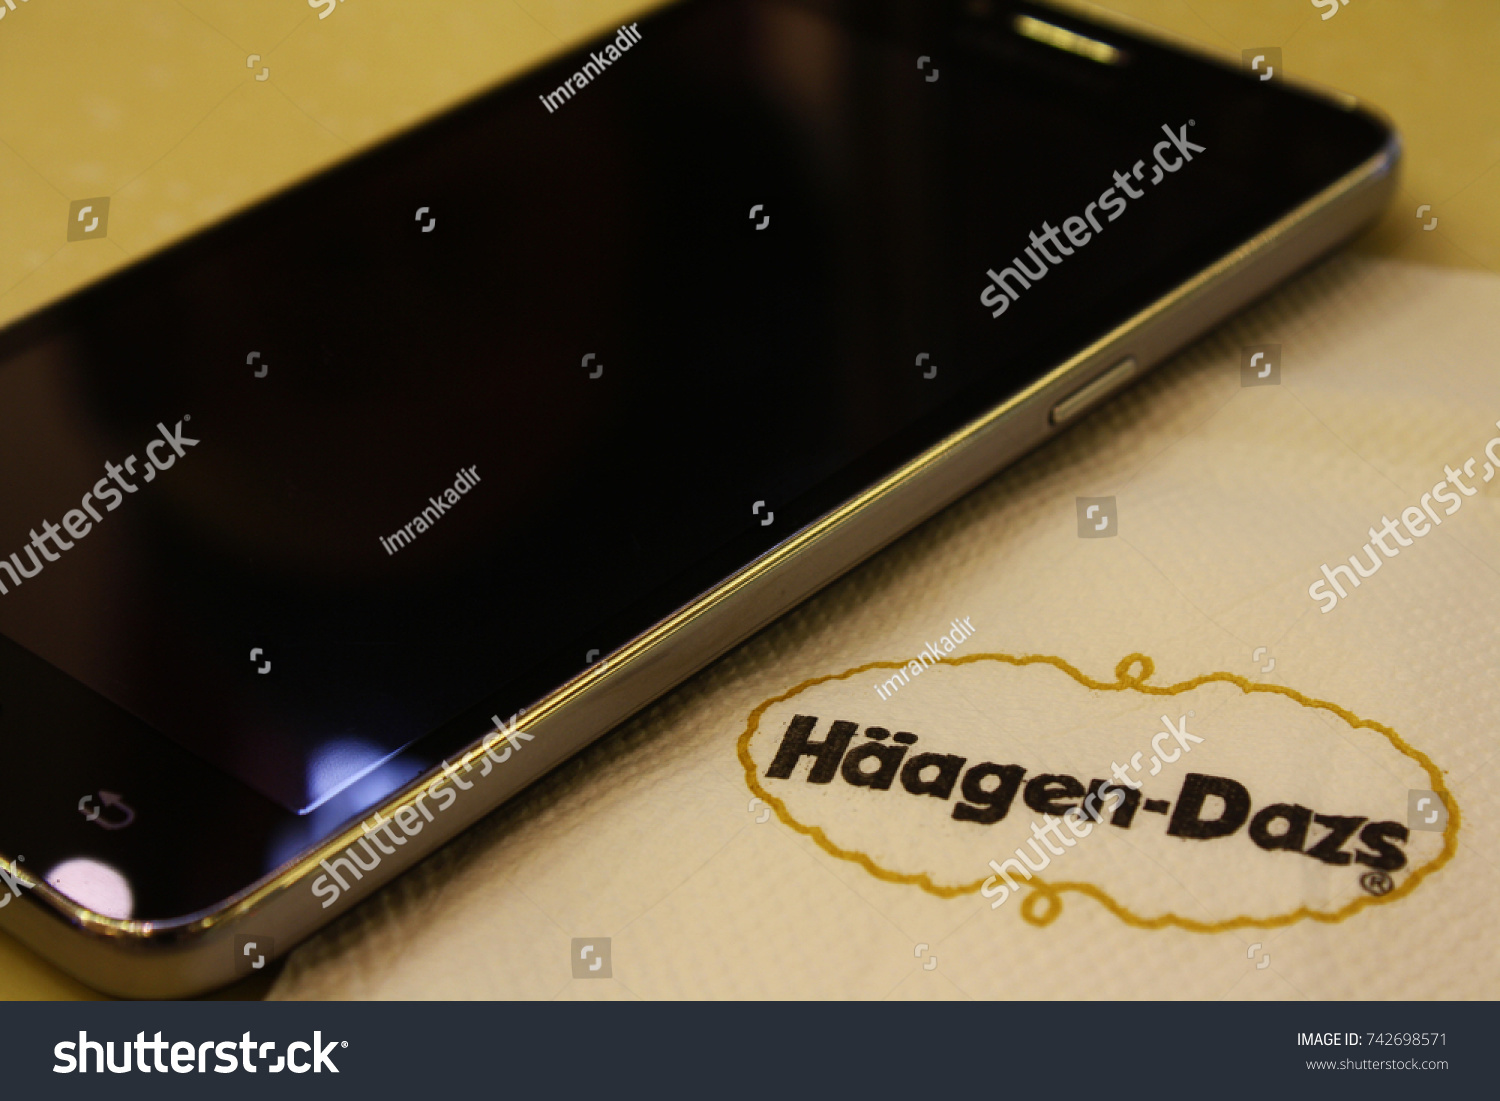 Photo haagen dazs malaysia brand android stock photo 742698571 photo for haagen dazs malaysia brand with android on the top of the table photo buycottarizona